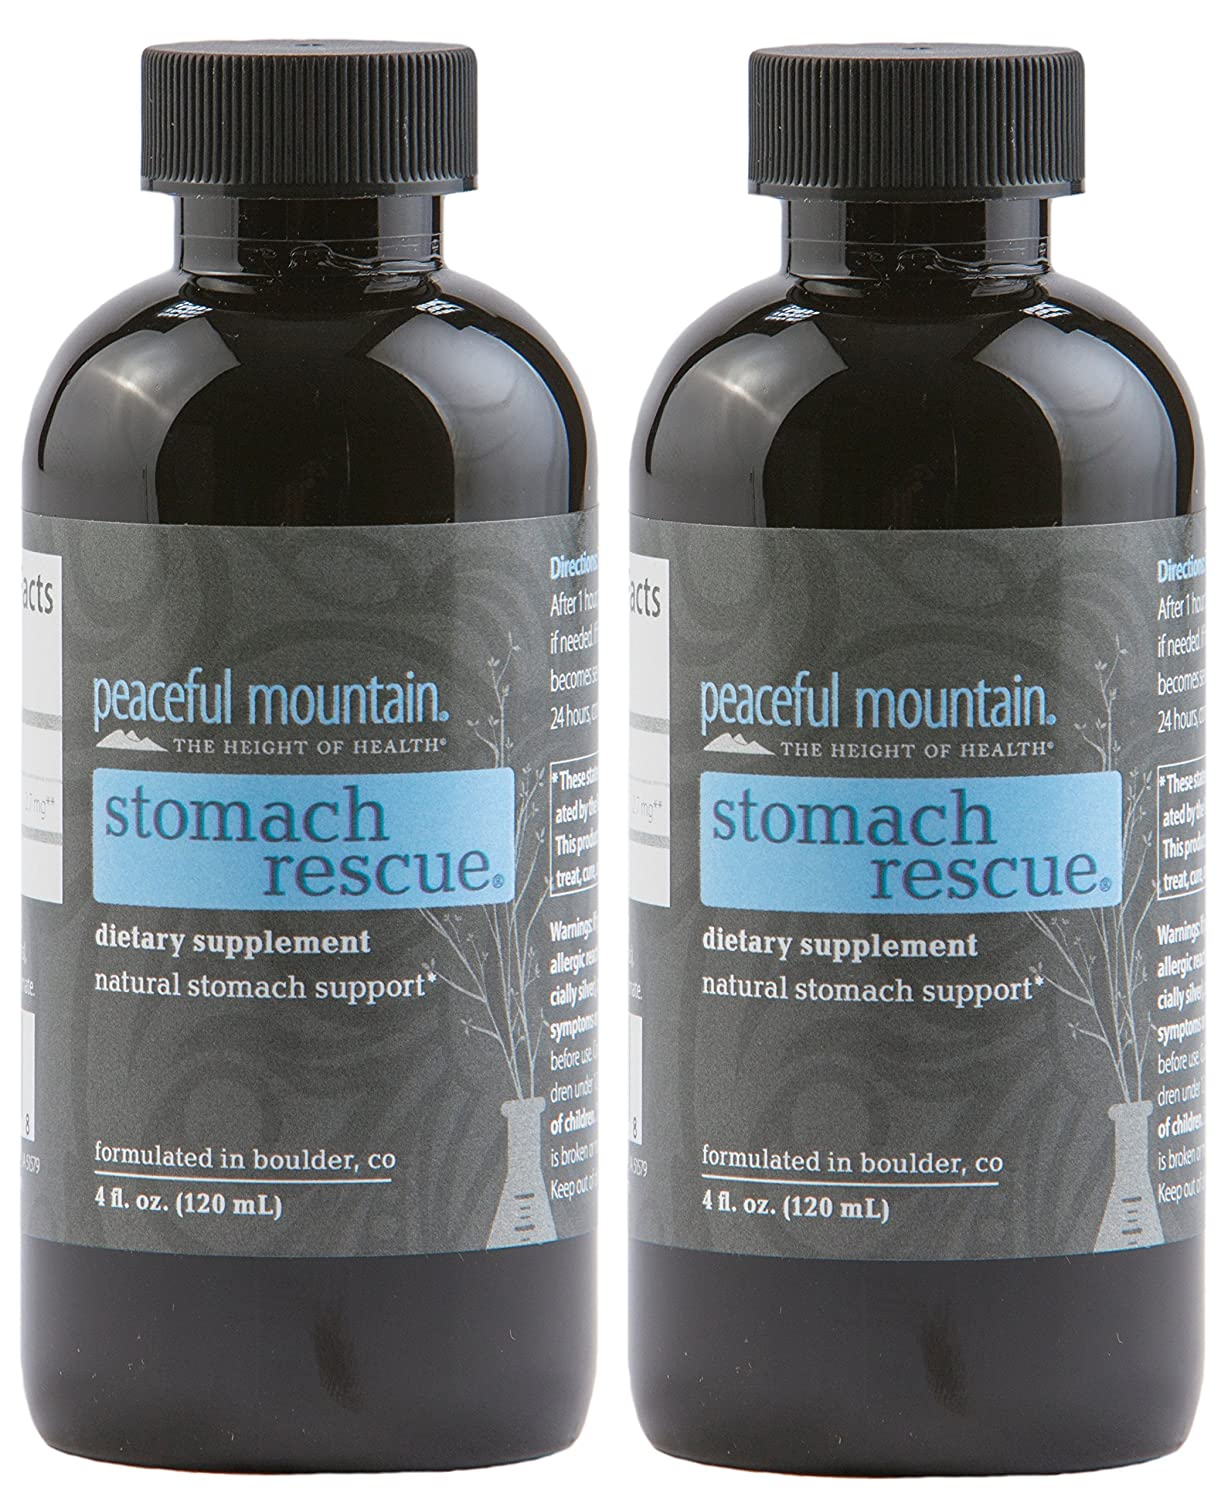 Image result for Peaceful Mountain Stomach Rescue